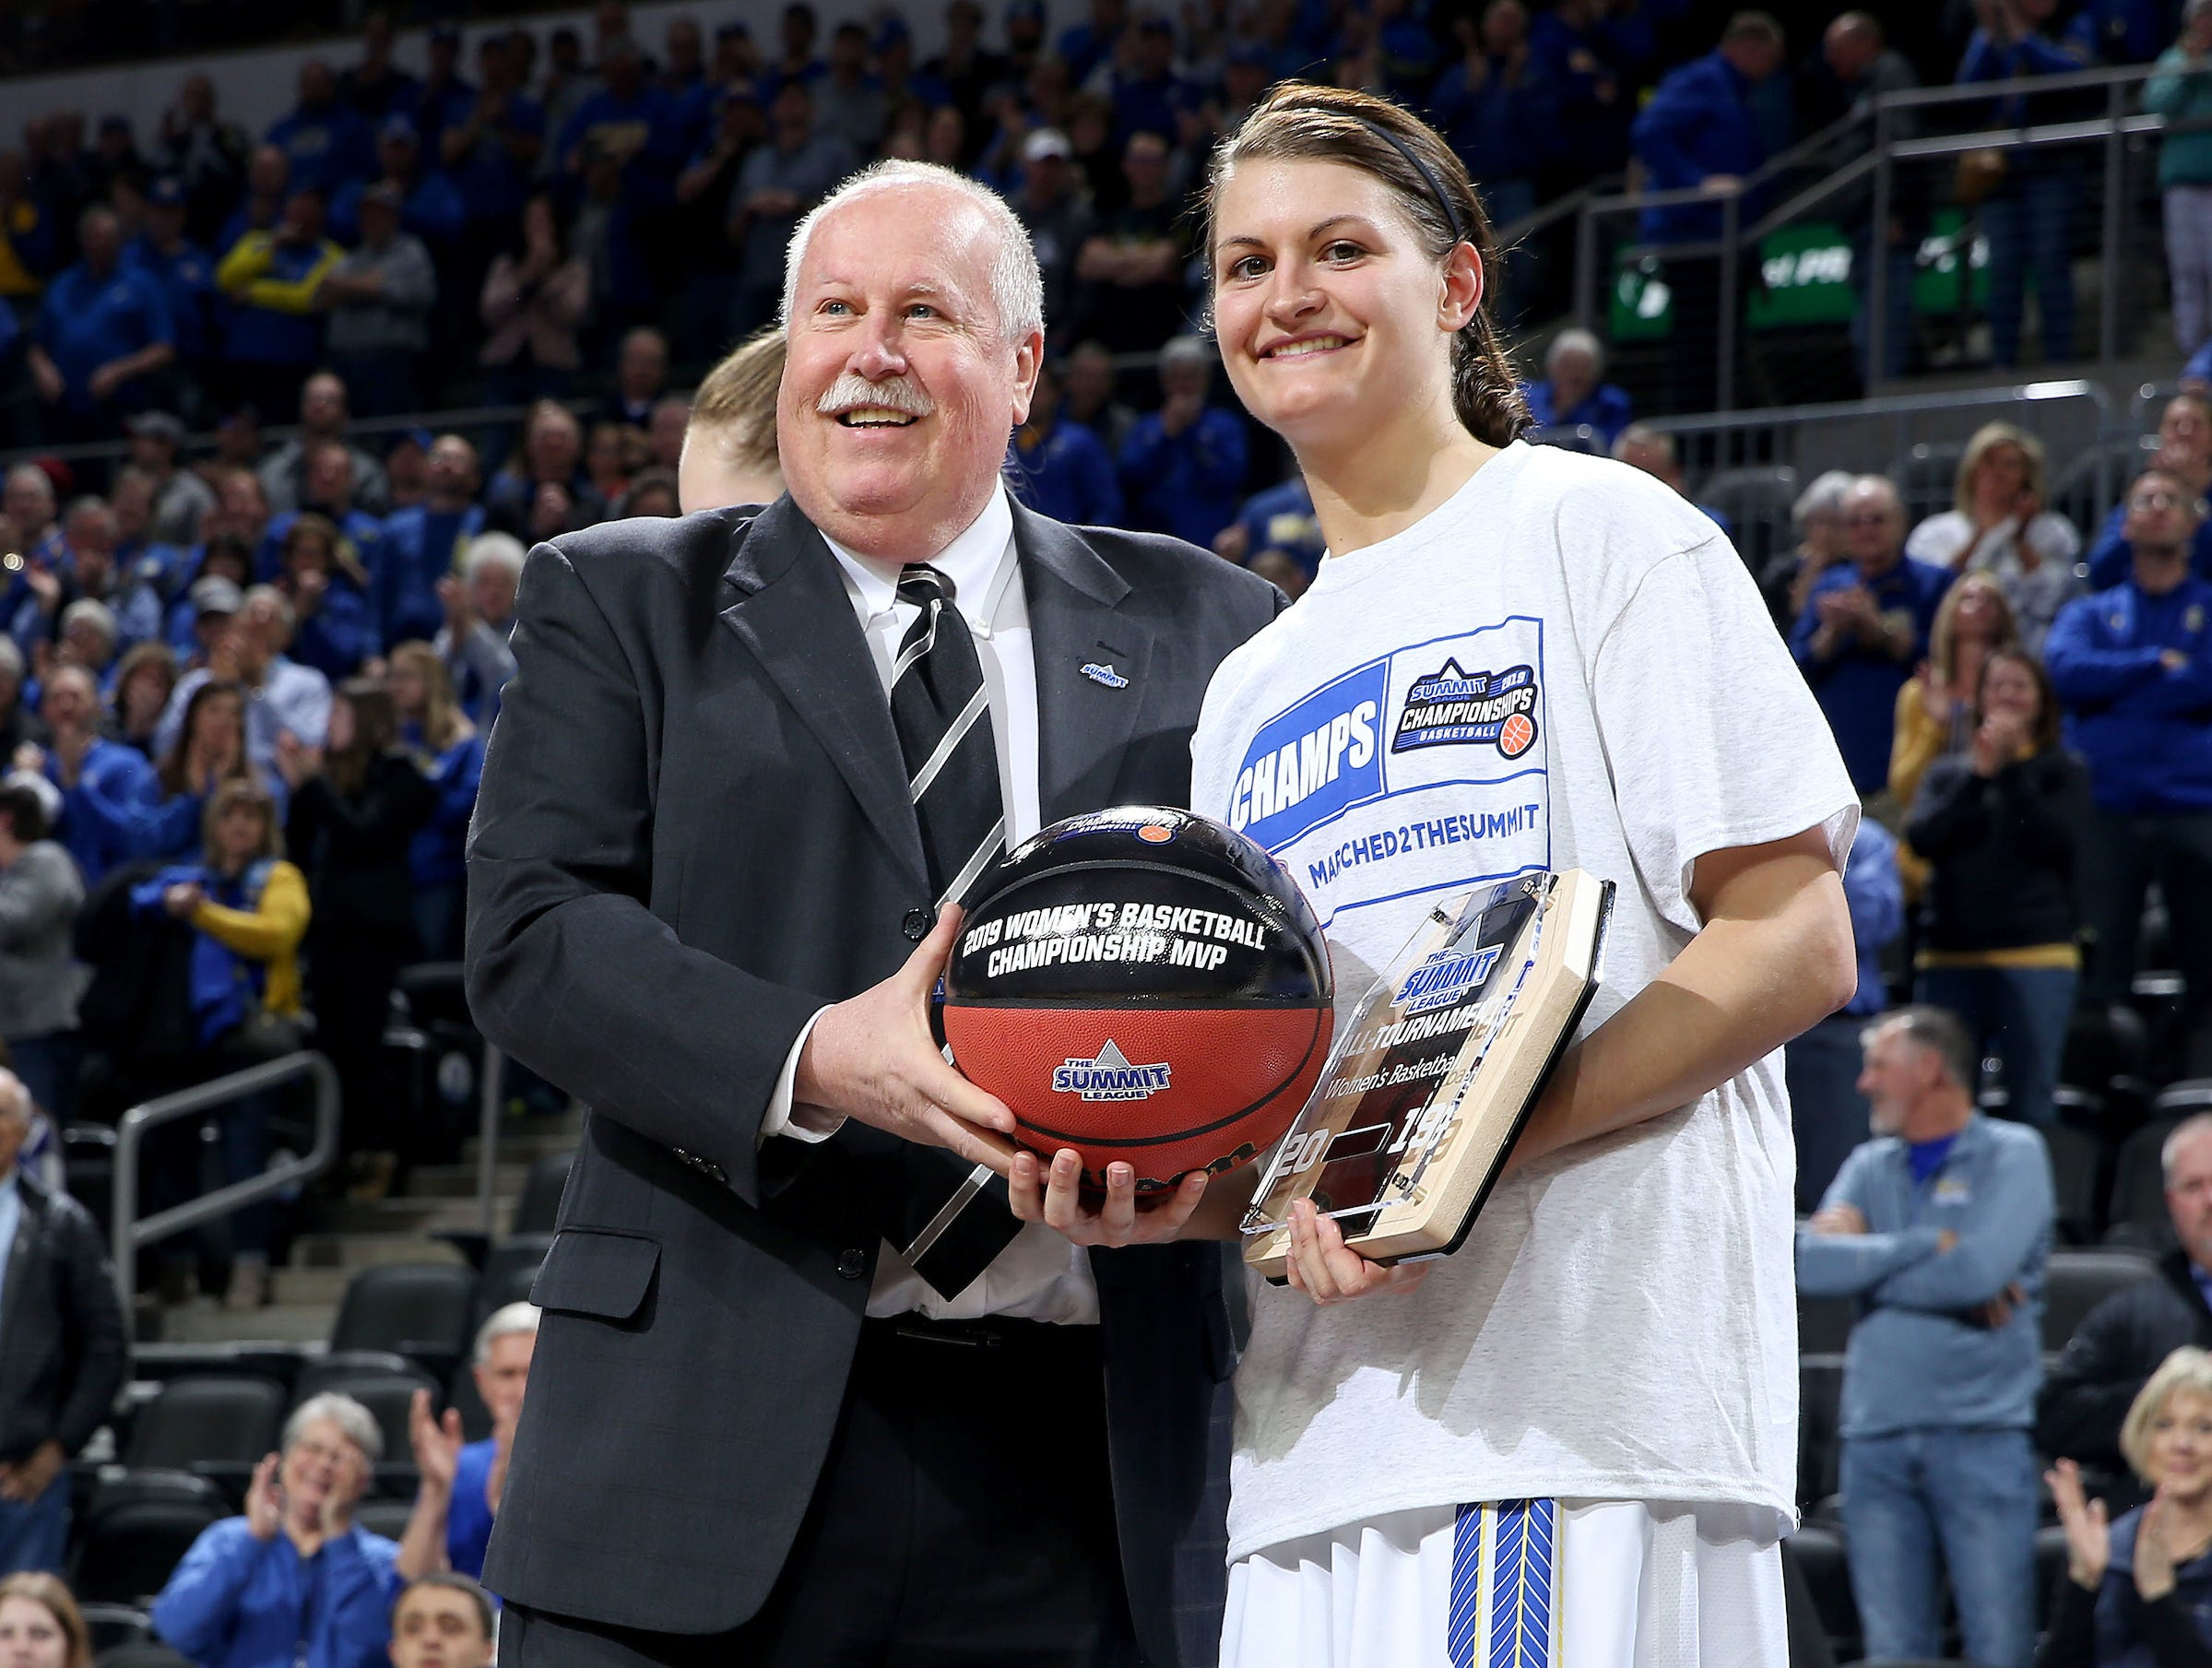 SIOUX FALLS, SD - MARCH 11: Summit League Commissioner Tom Douple poses with Summit League Player of the Year Macy Miller at the 2019 Summit League Basketball Tournament at the Denny Sanford Premier Center in Sioux Falls. (Photo by Dave Eggen/Inertia)